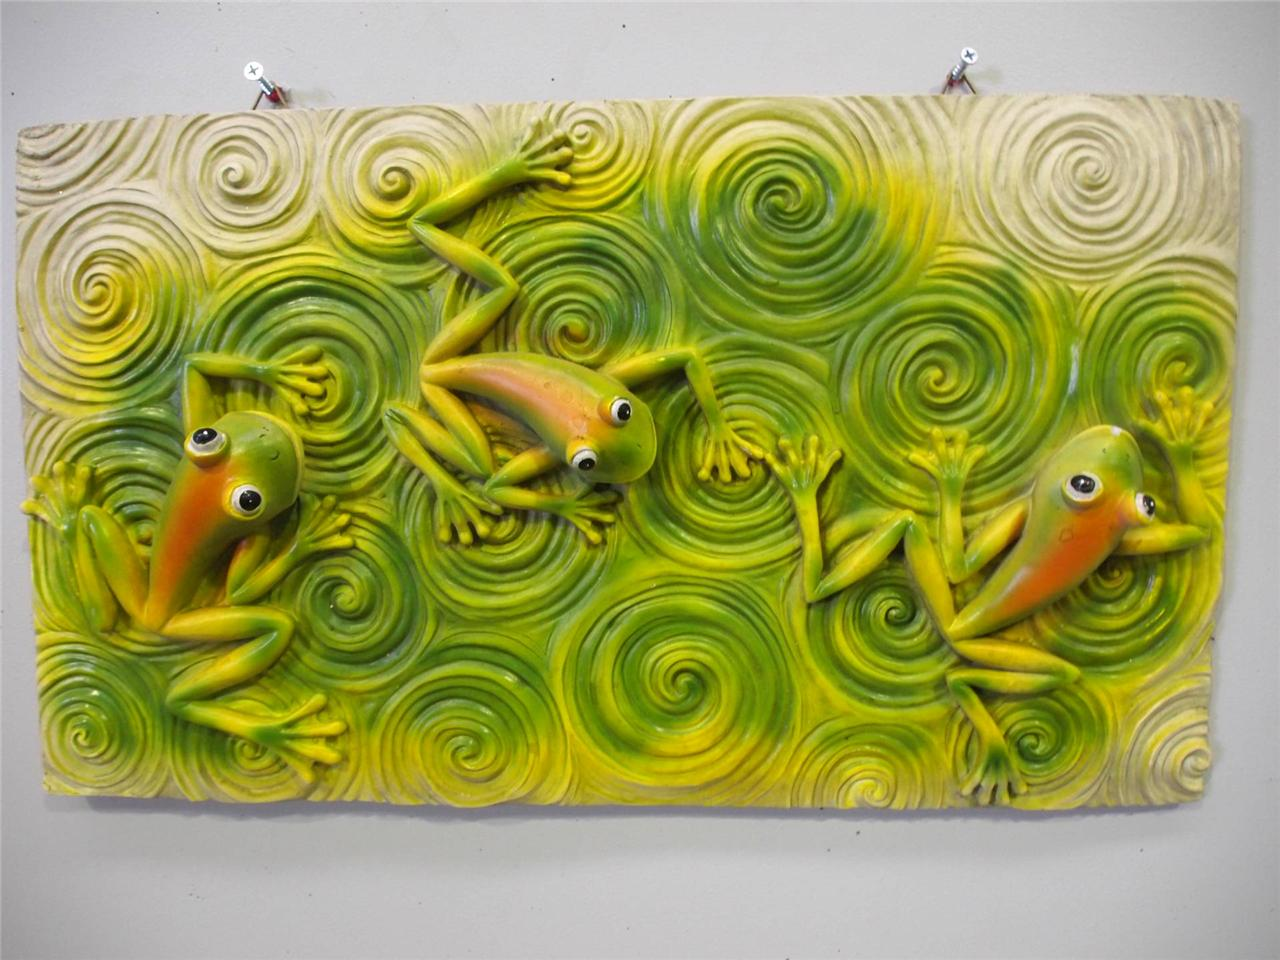 Colorful Frogs Alive IN A Swirl Pond Wall Plaque Decor ART